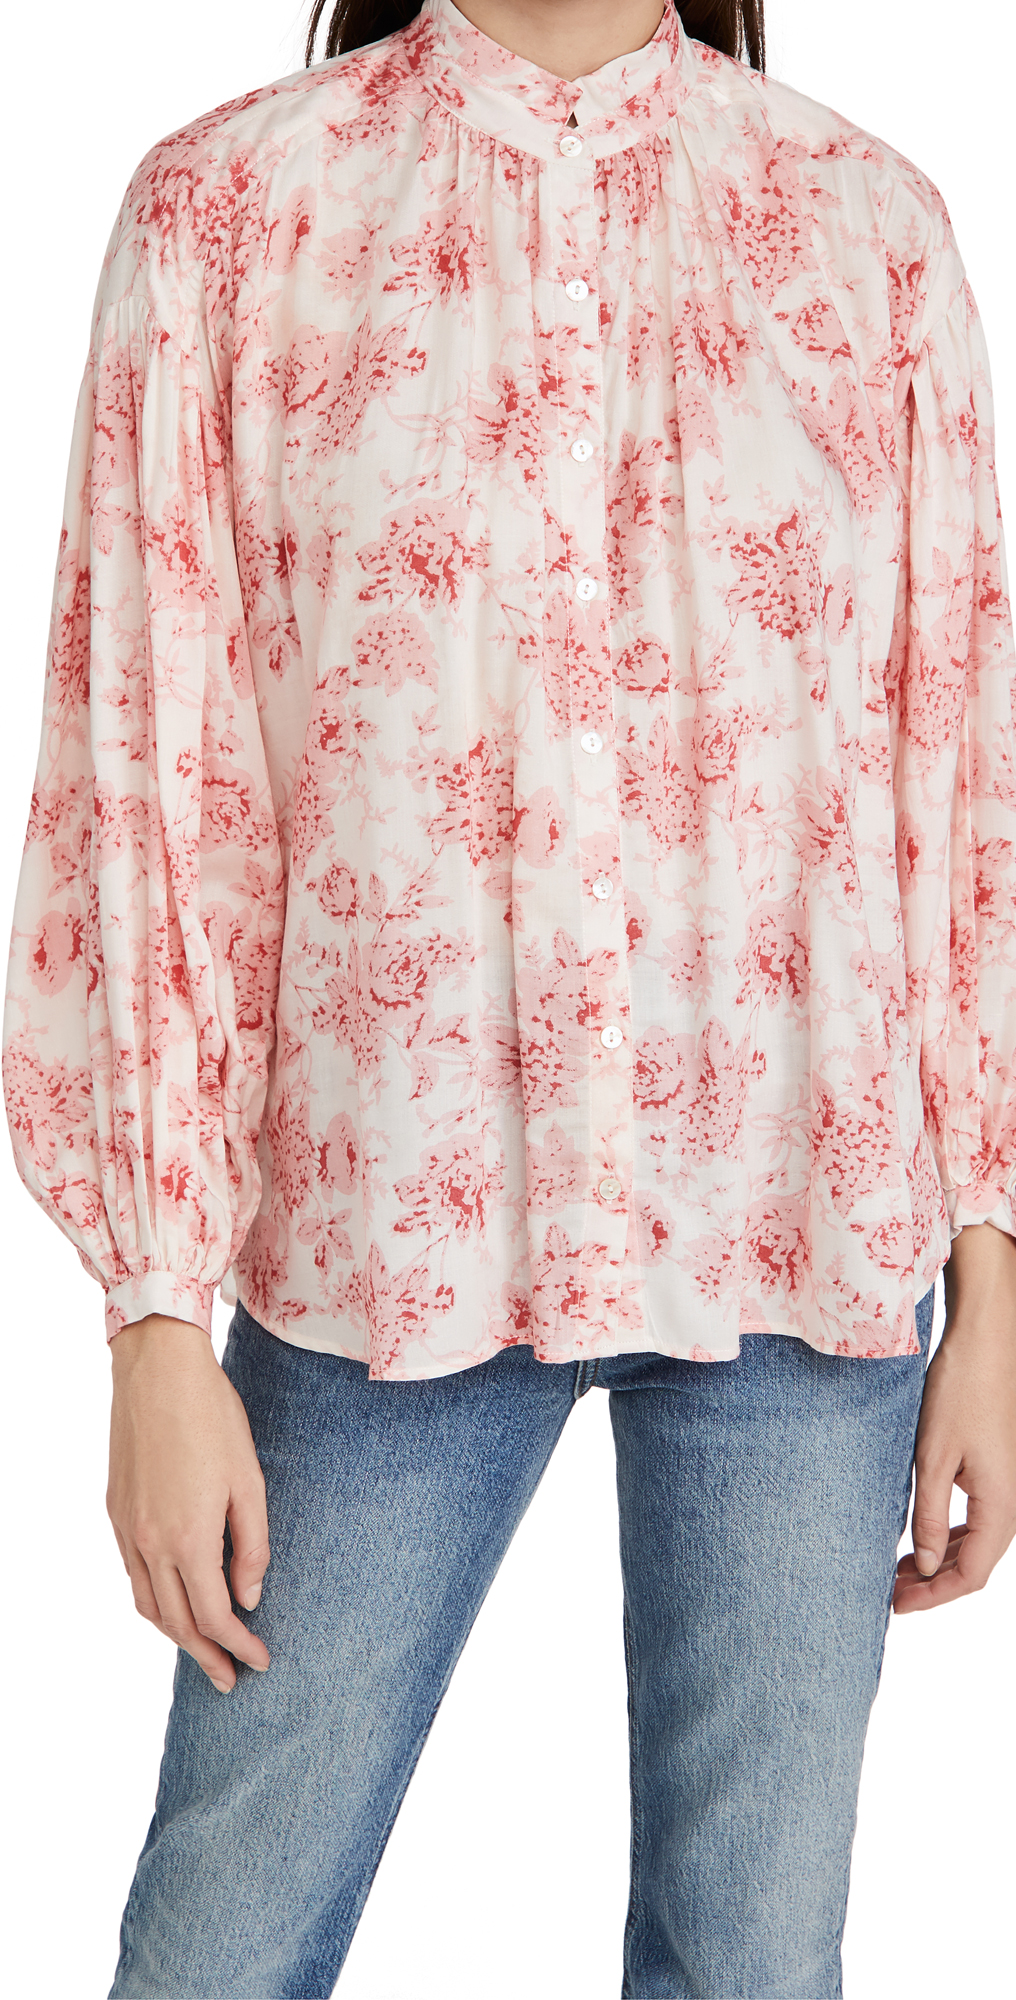 Alix of Bohemia Poet English Rose Print Shirt